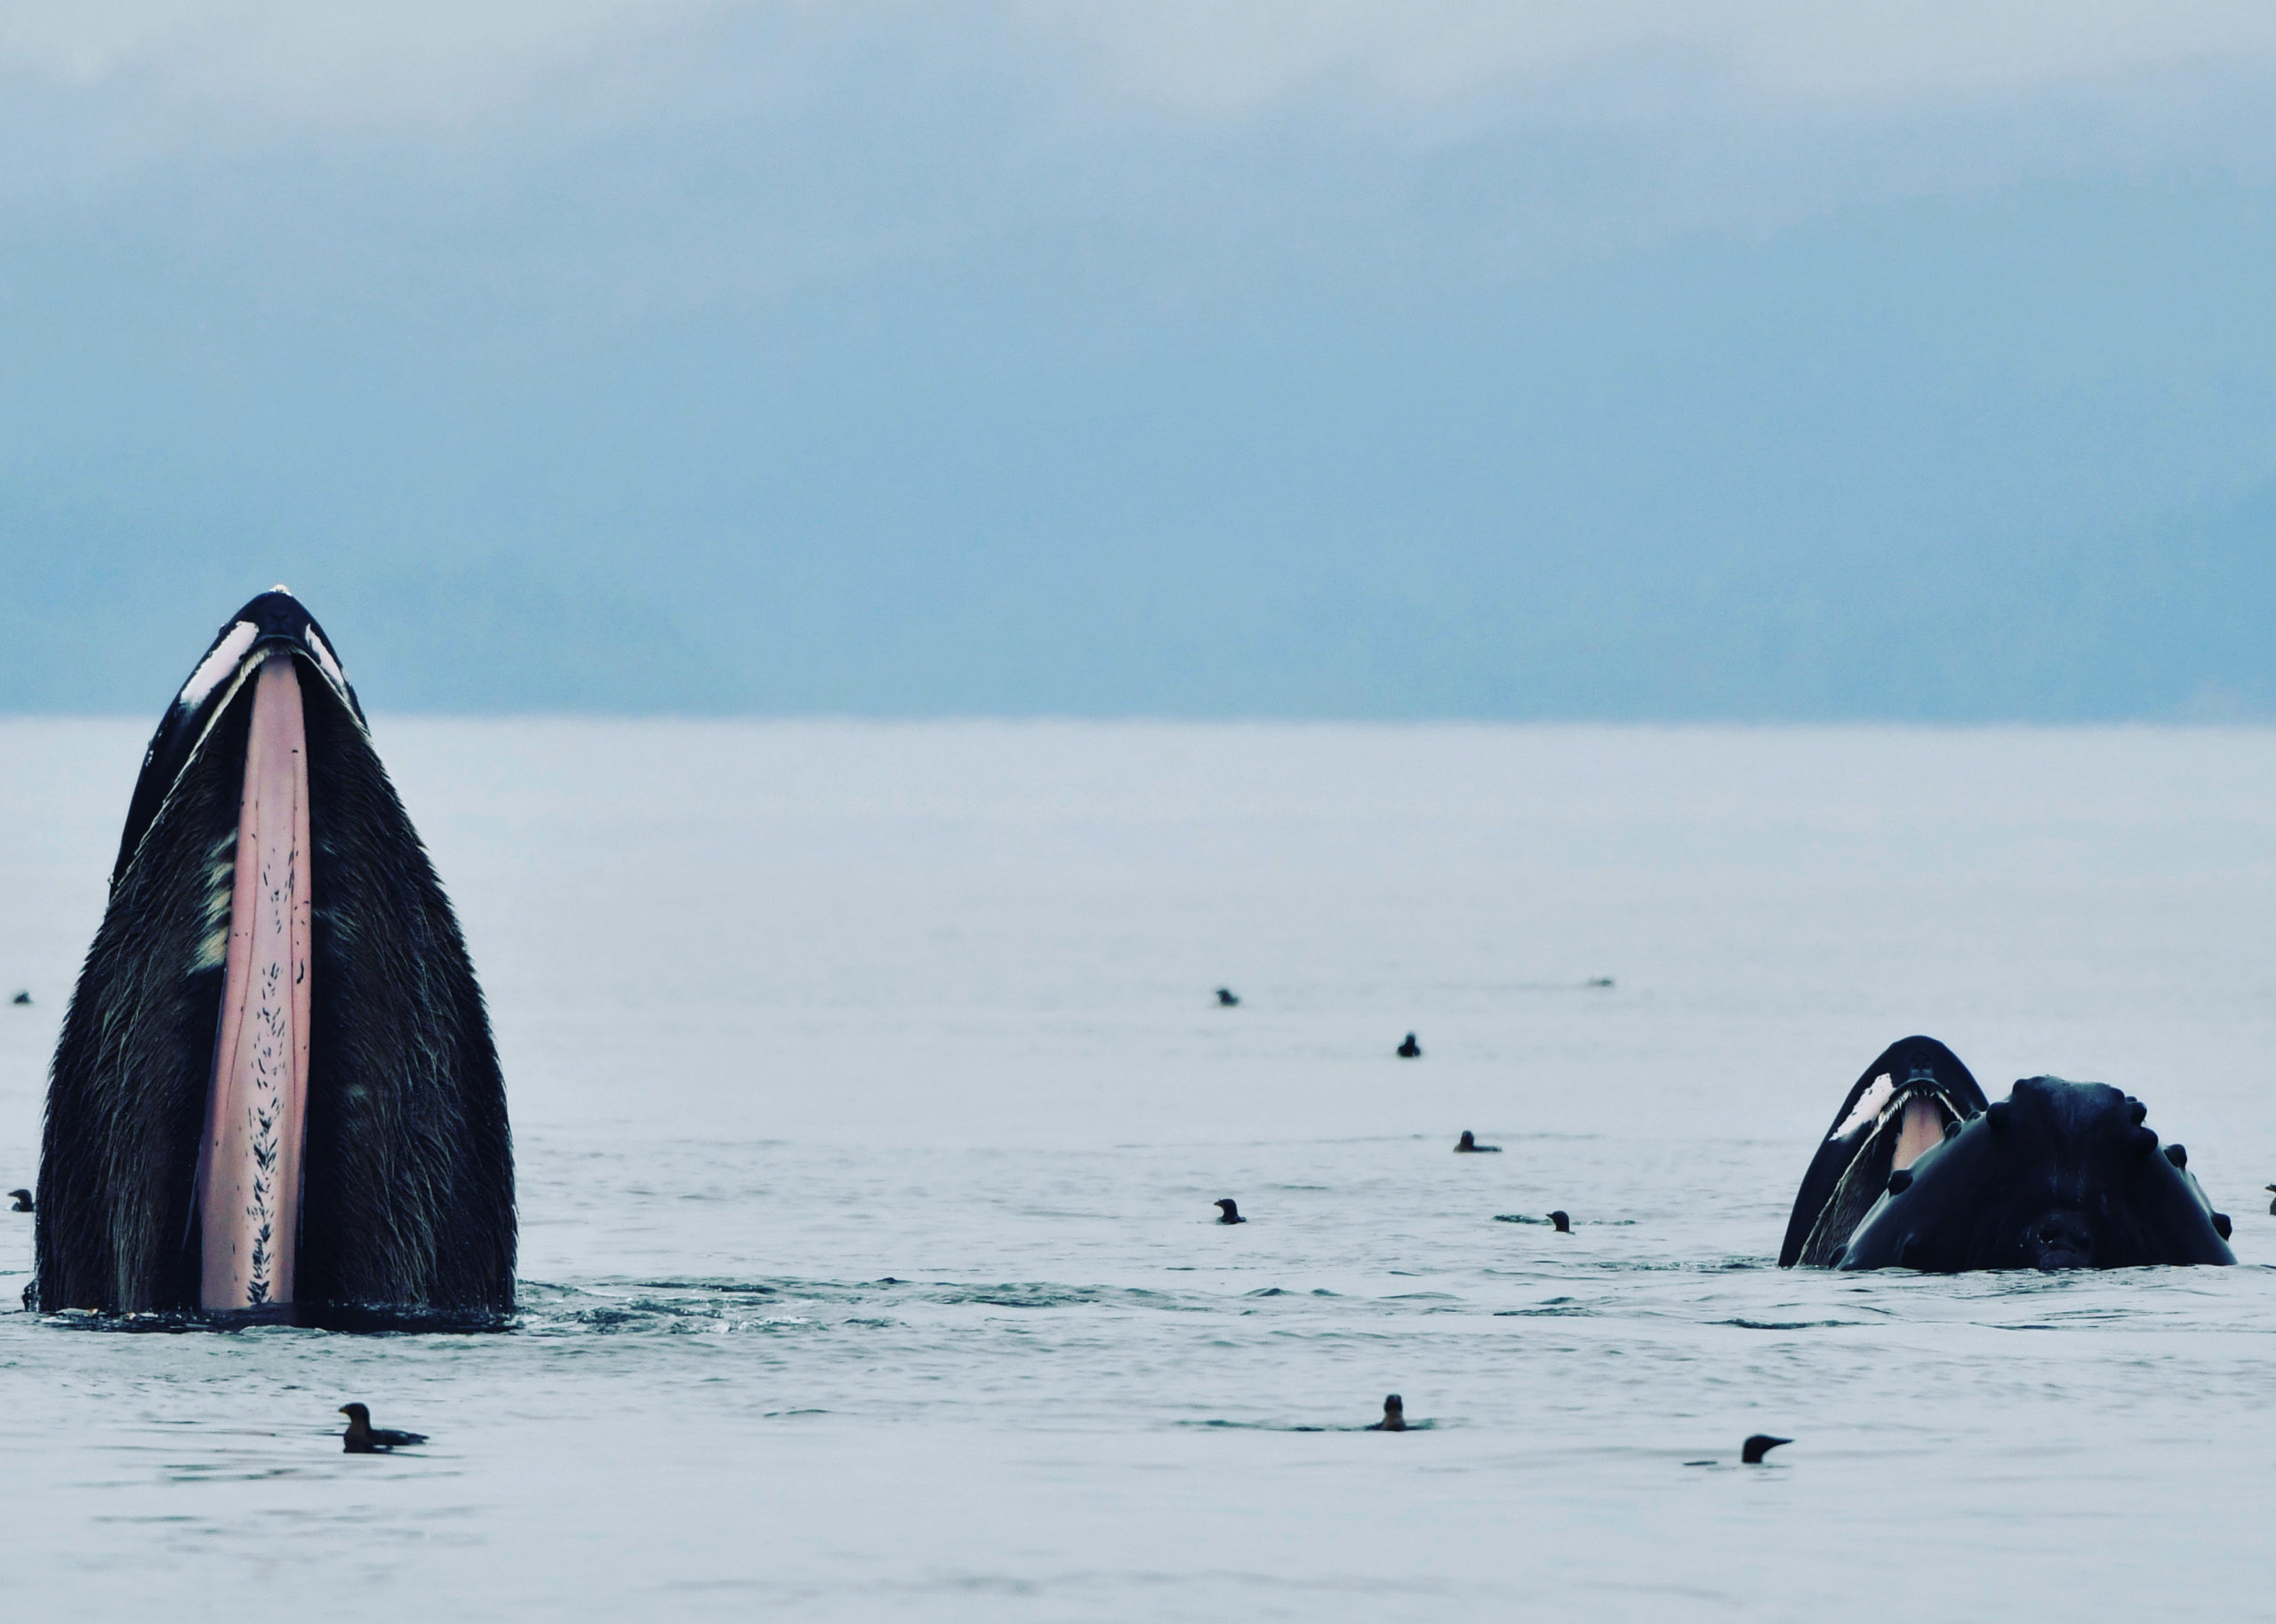 bubble net feeding humpback whales, Johnstone Strait, BC